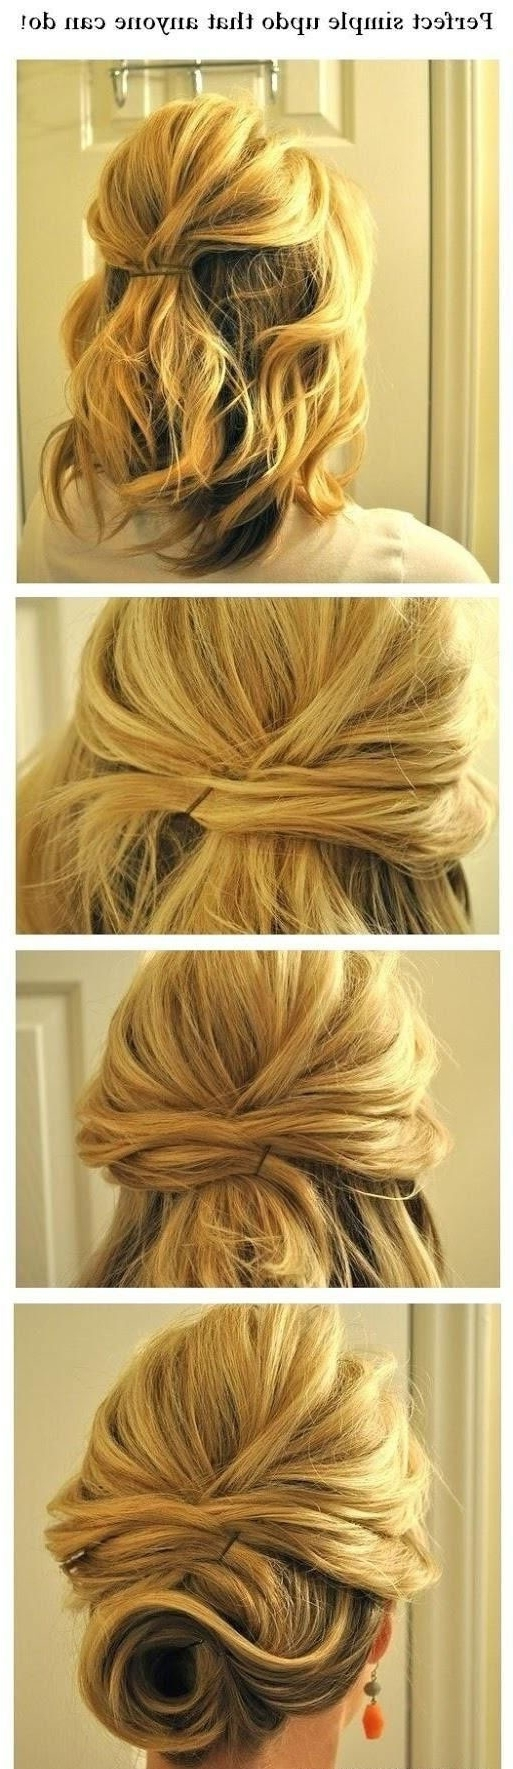 15 Cute And Easy Hairstyle Tutorials For Medium Length Hair – Gurl For Most Up To Date Easy Wedding Hairstyles For Shoulder Length Hair (View 2 of 15)